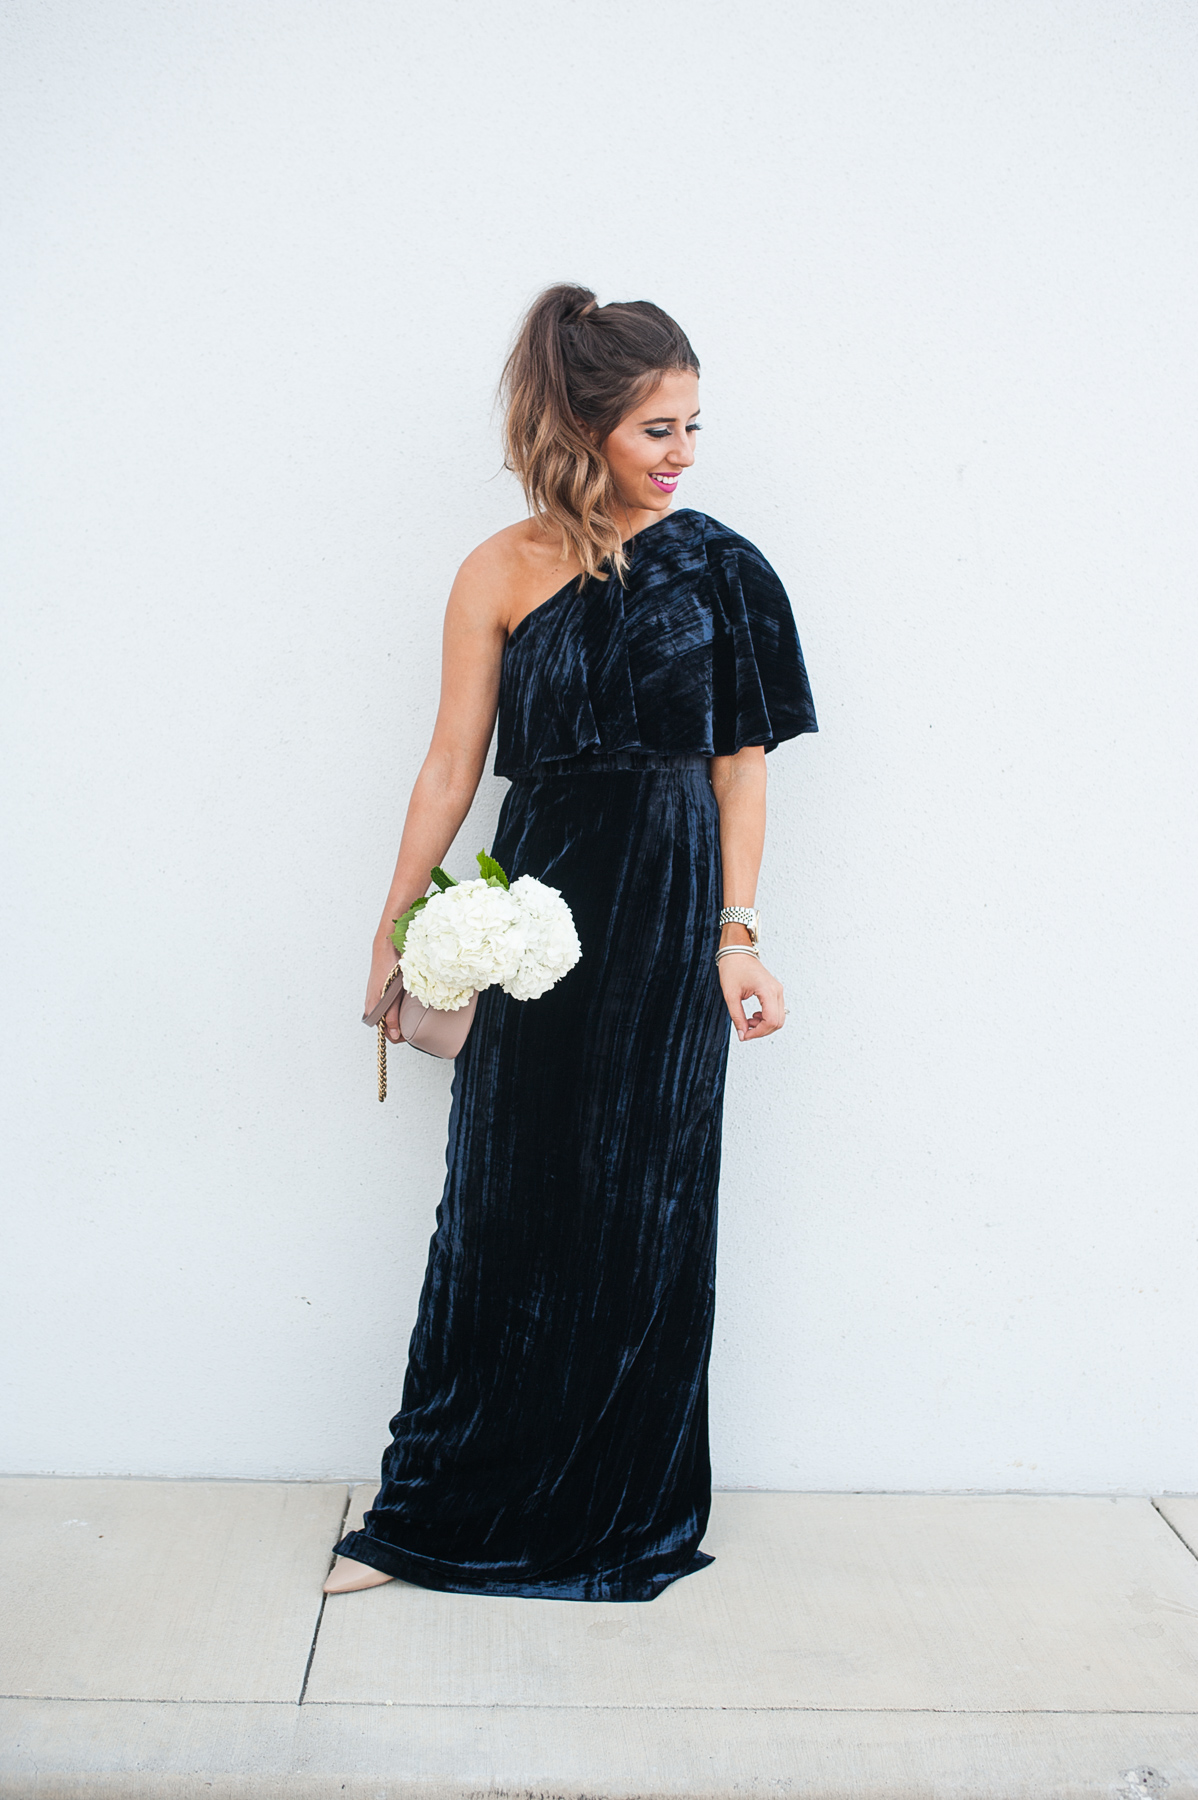 Velvet Gown for the Ball